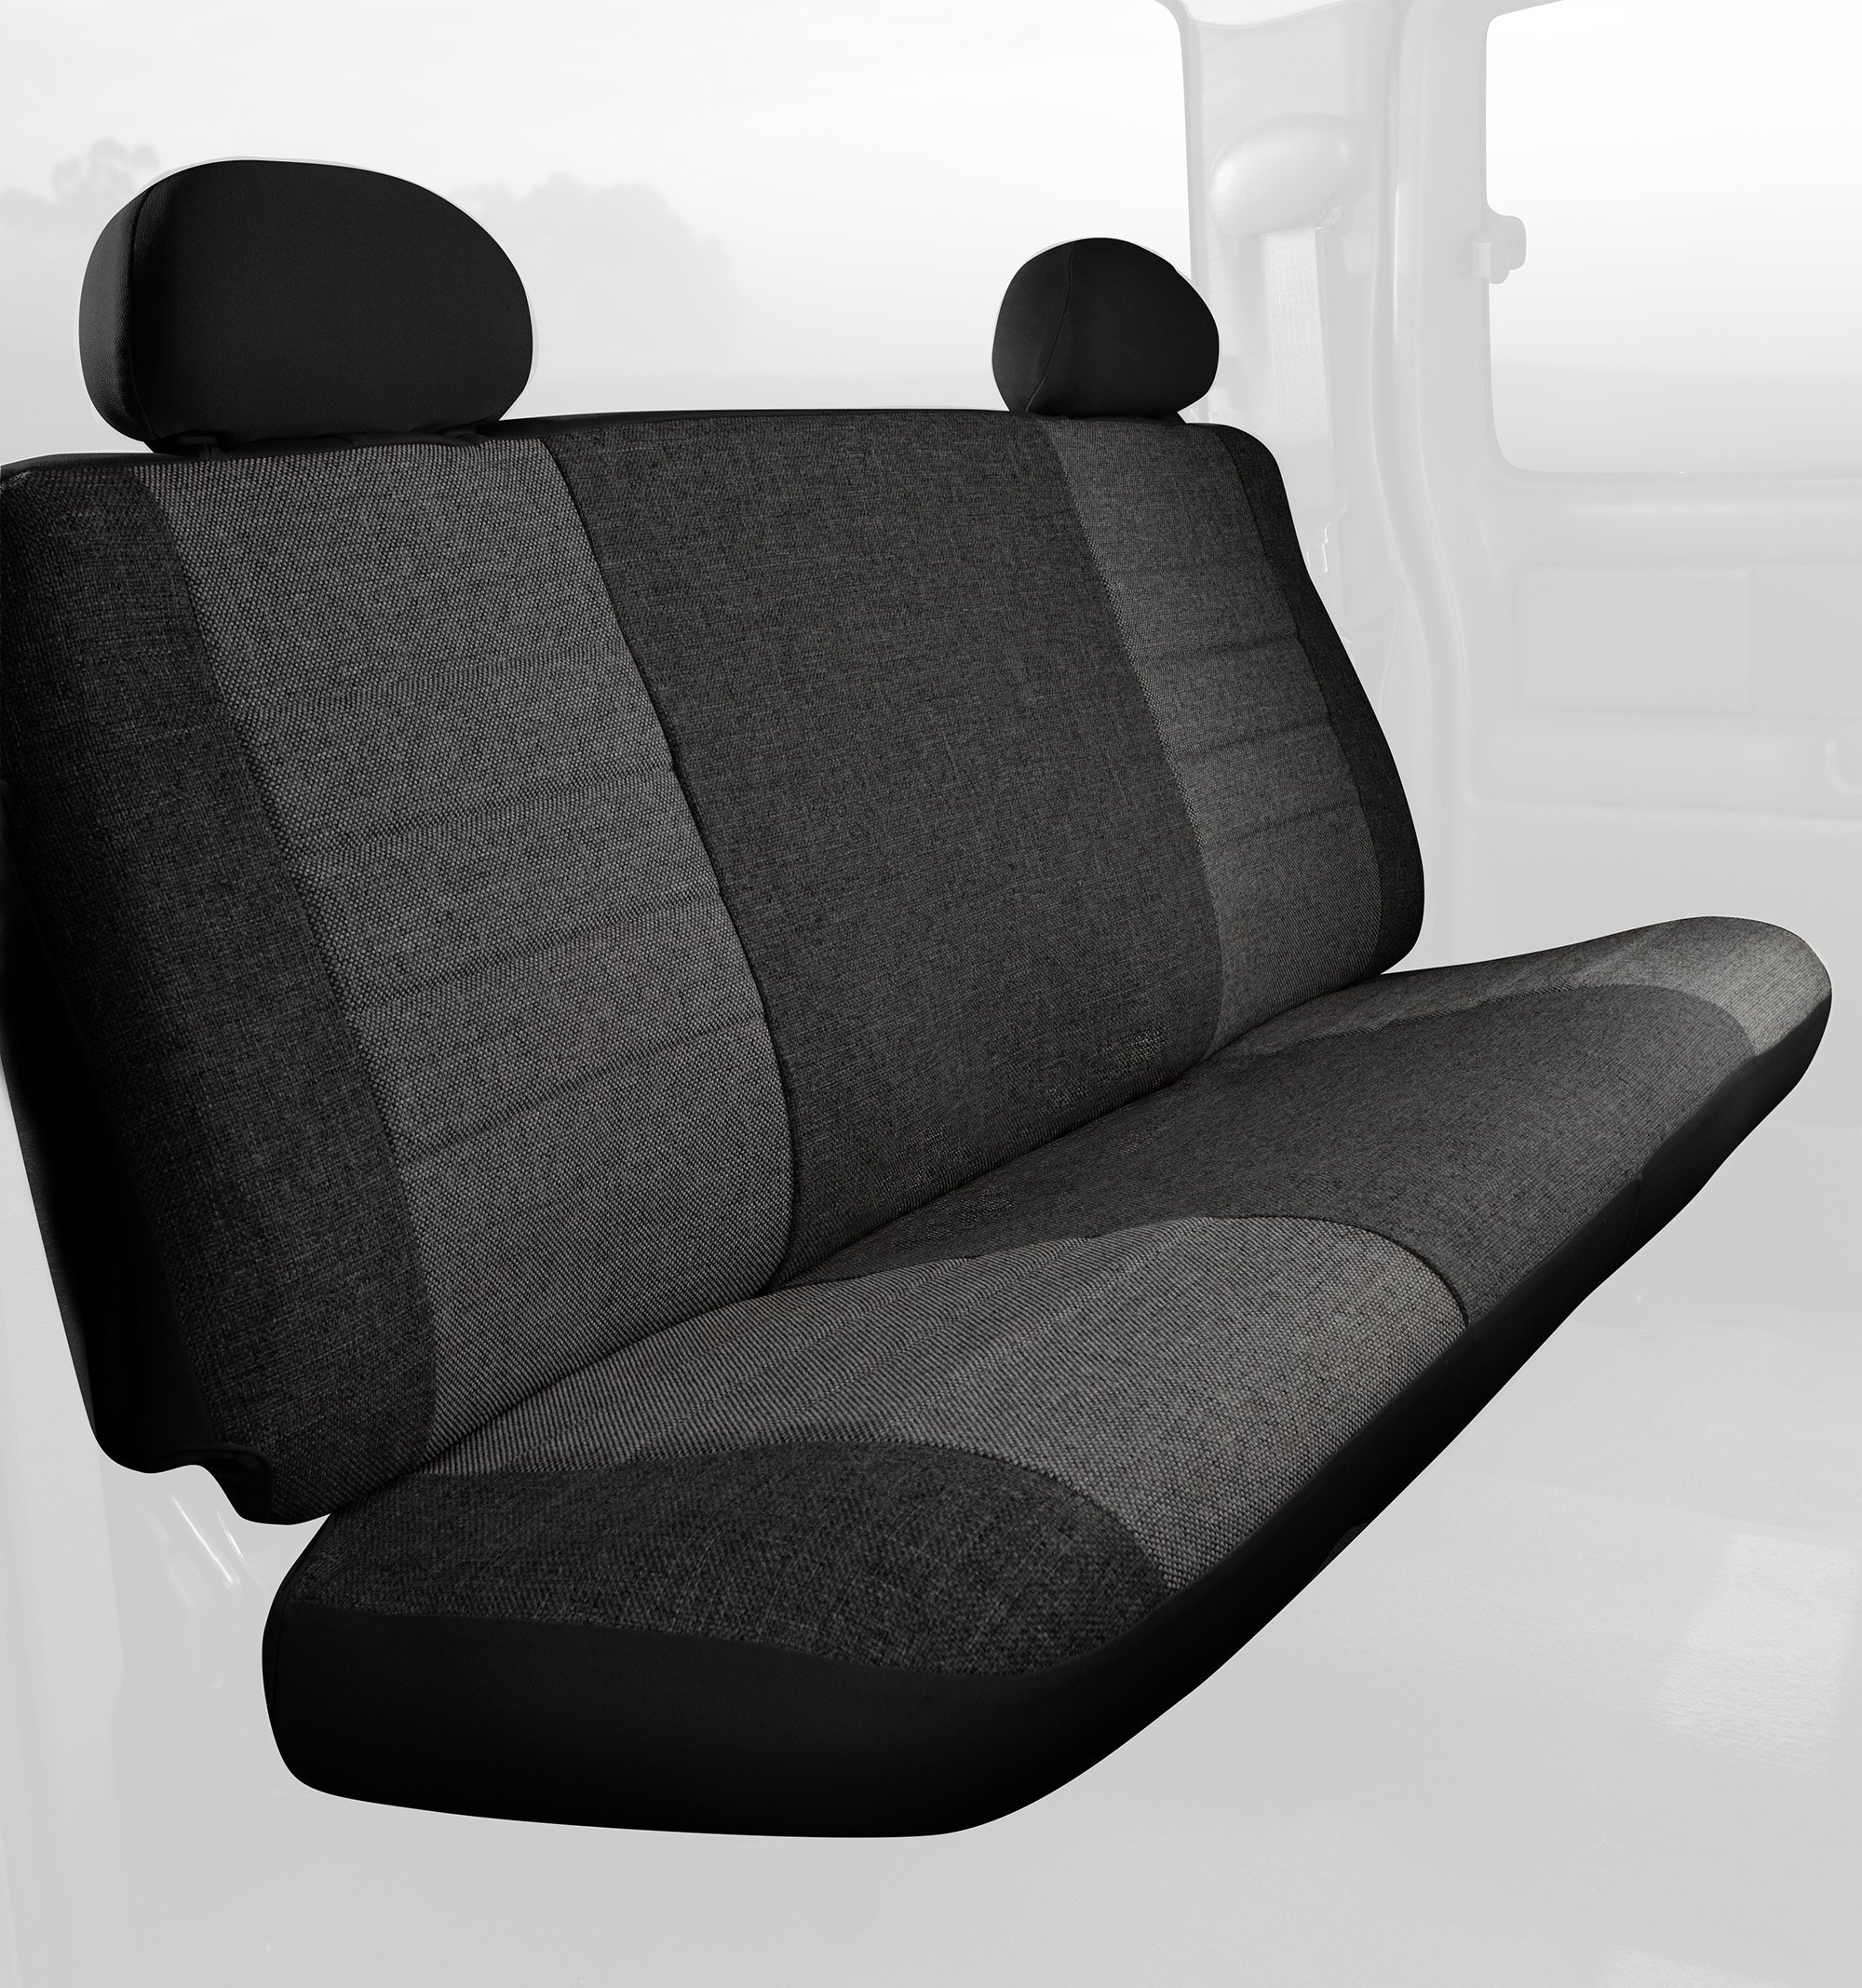 Fia OE32-95 CHARC Custom Fit Rear Seat Cover Bench Seat - Tweed (Charcoal) by FIA (Image #1)